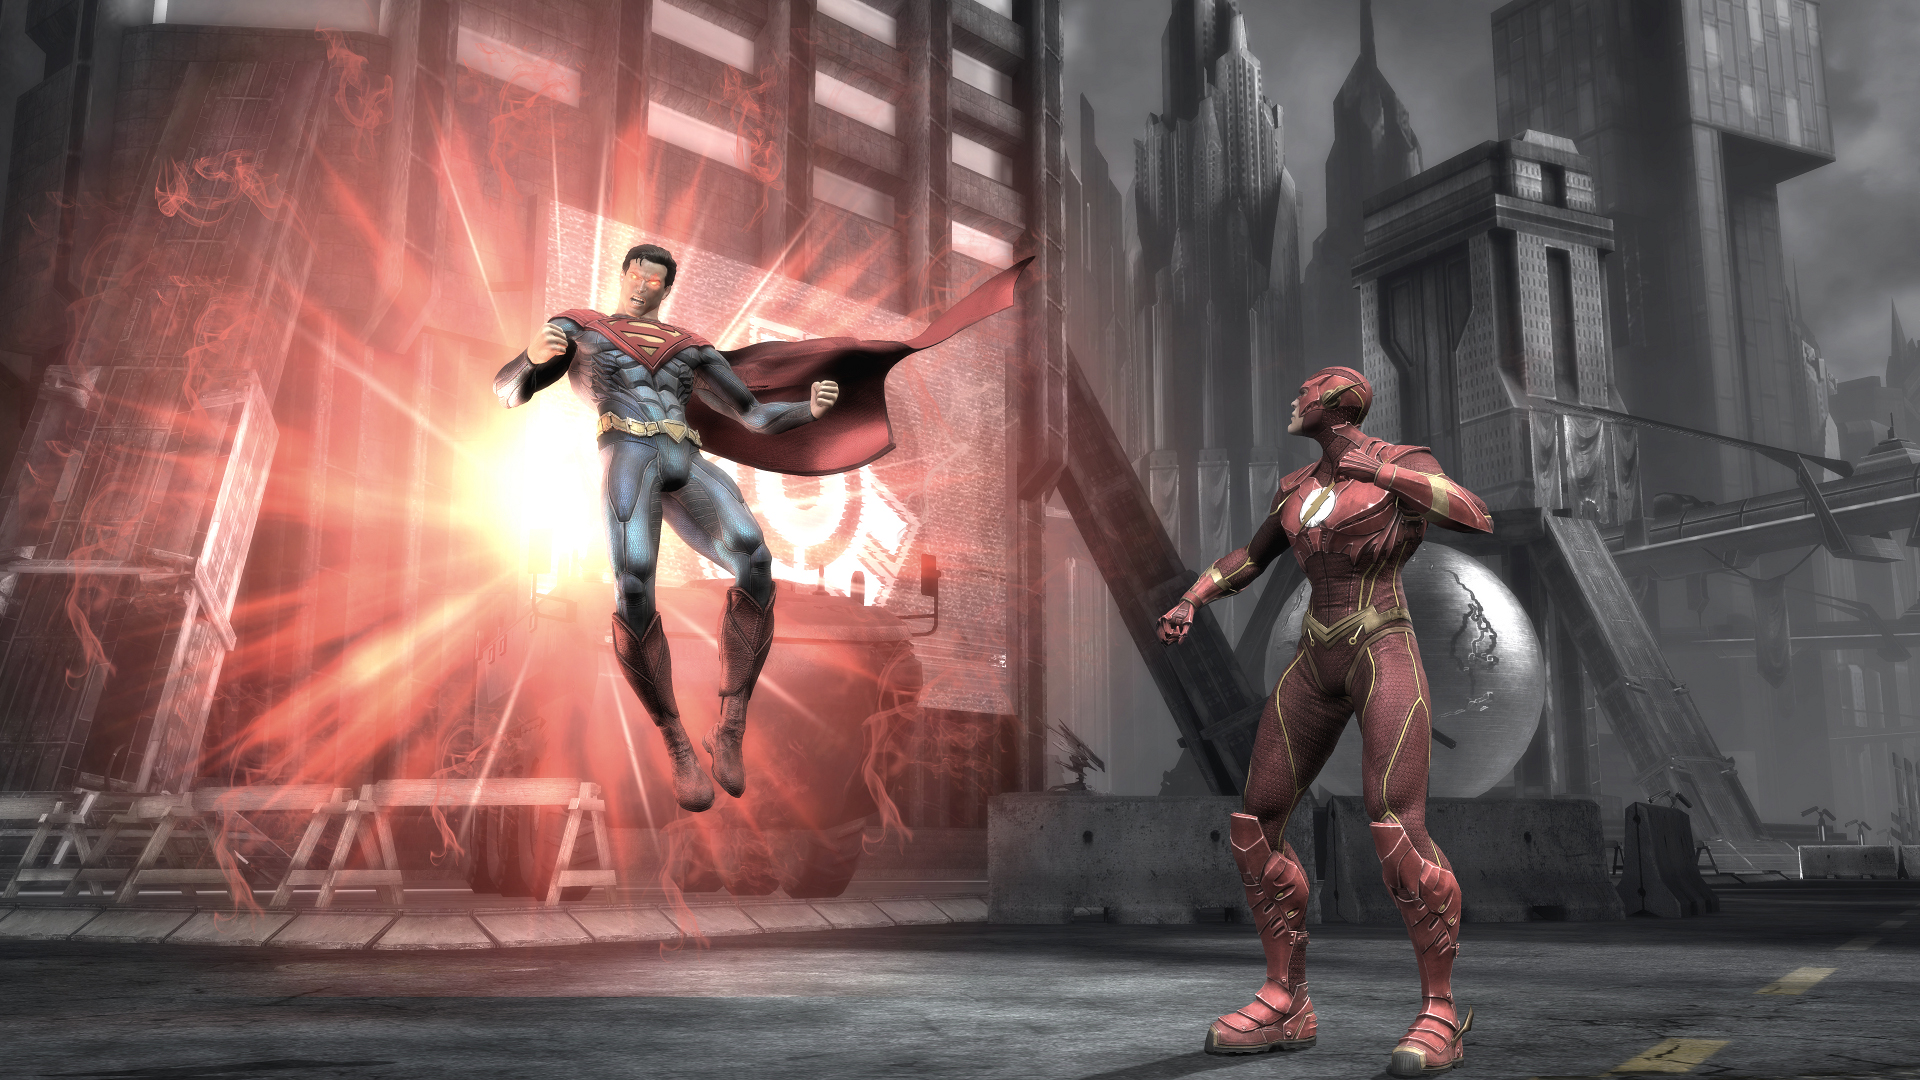 15 minutos que le hacen justicia a Injustice: Gods Among Us [Video]